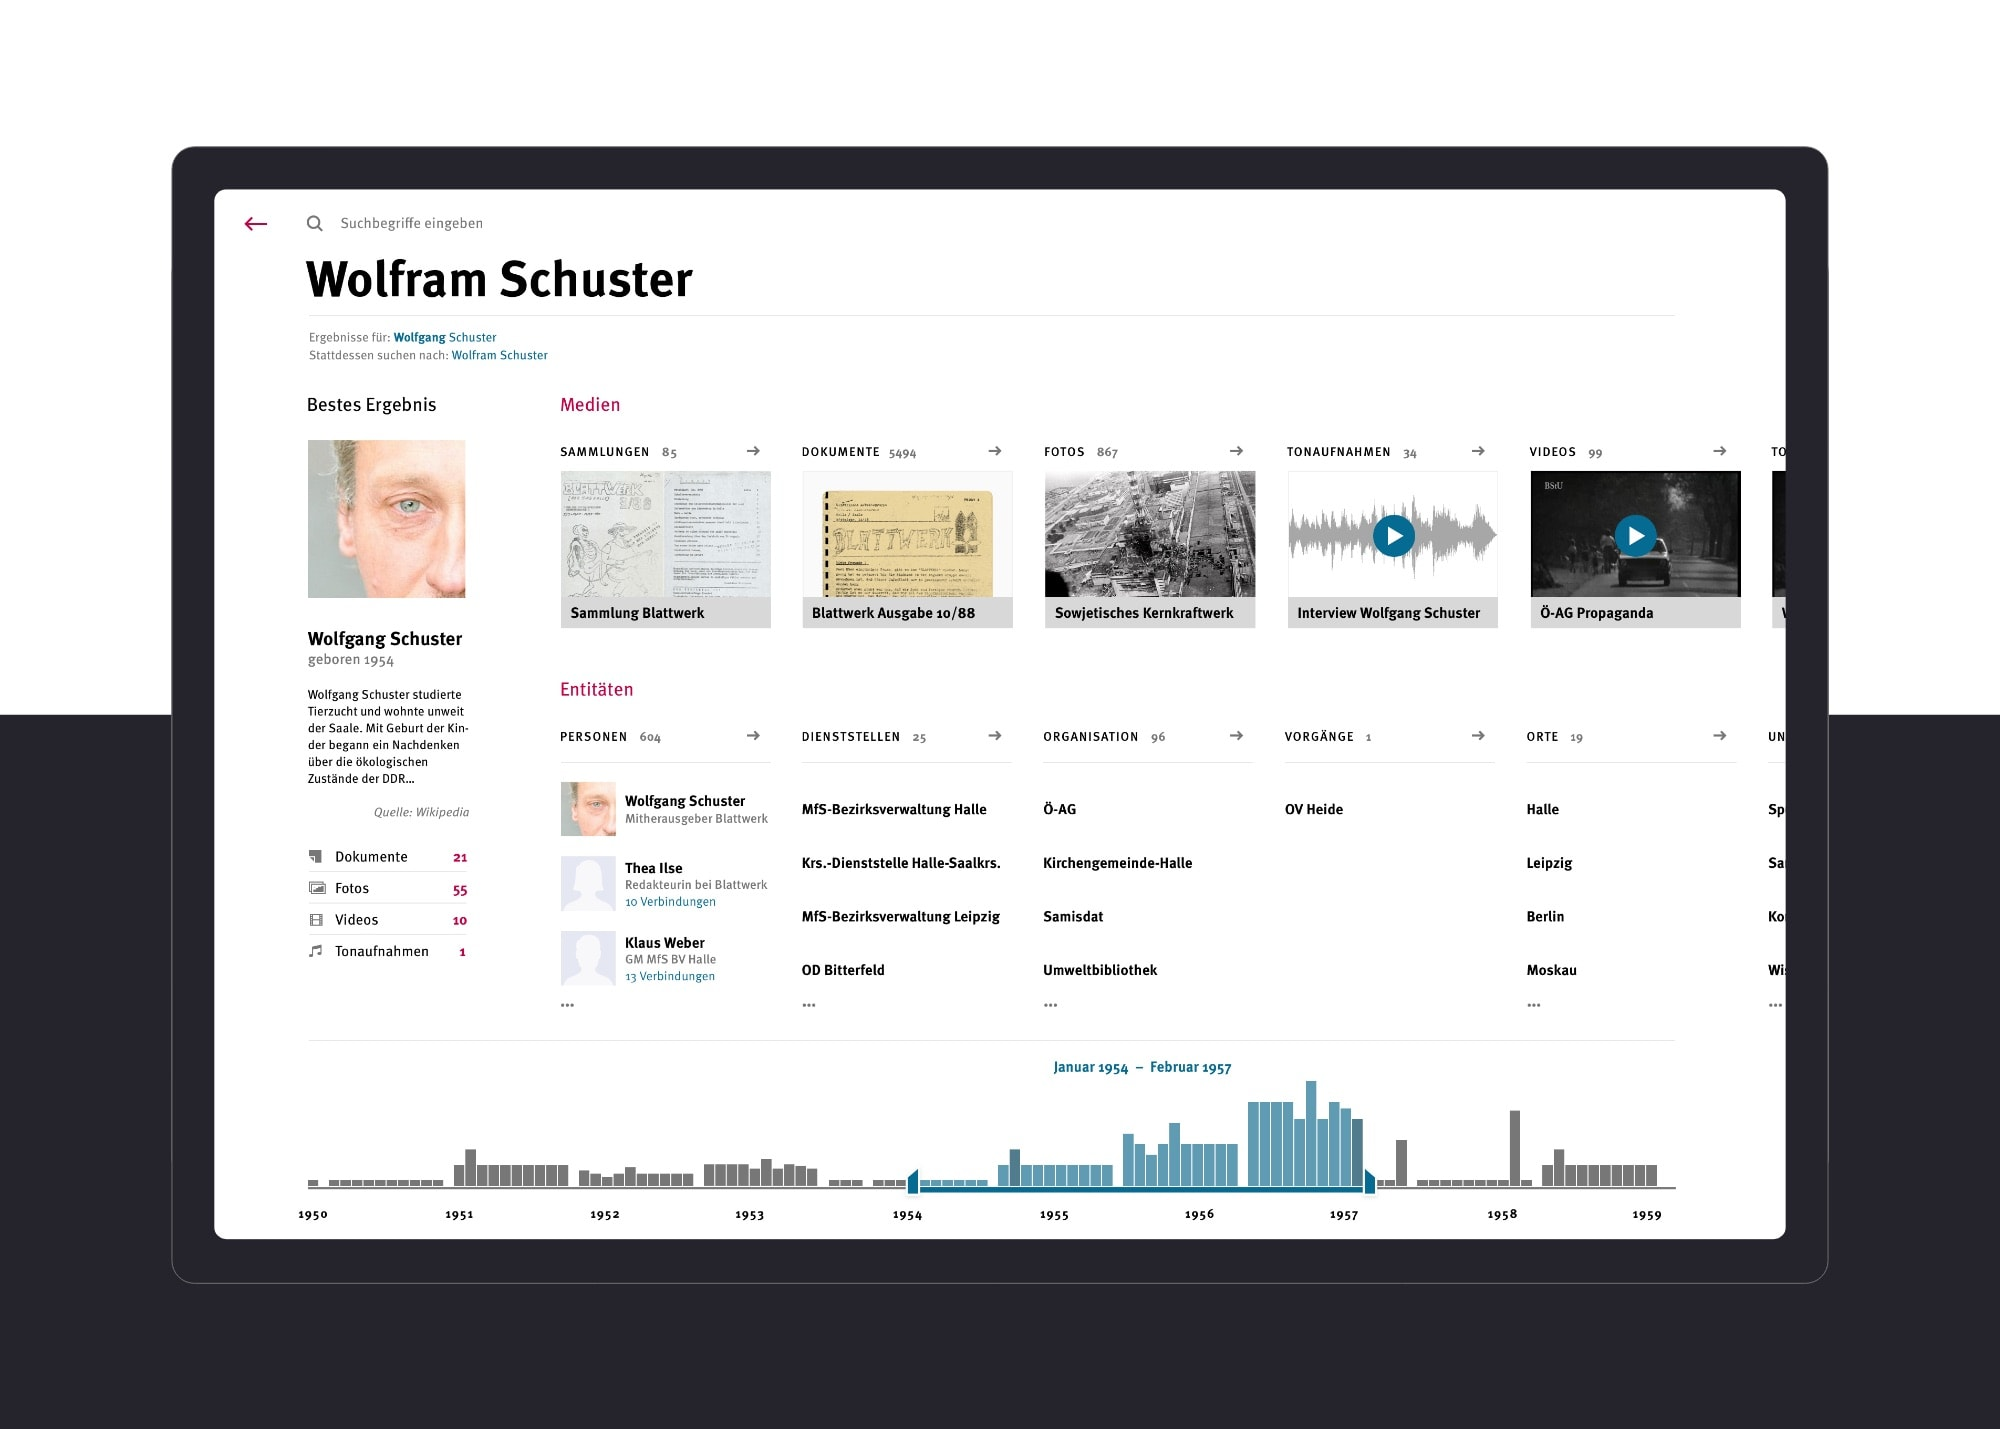 Data visualization concept of Stasi documents